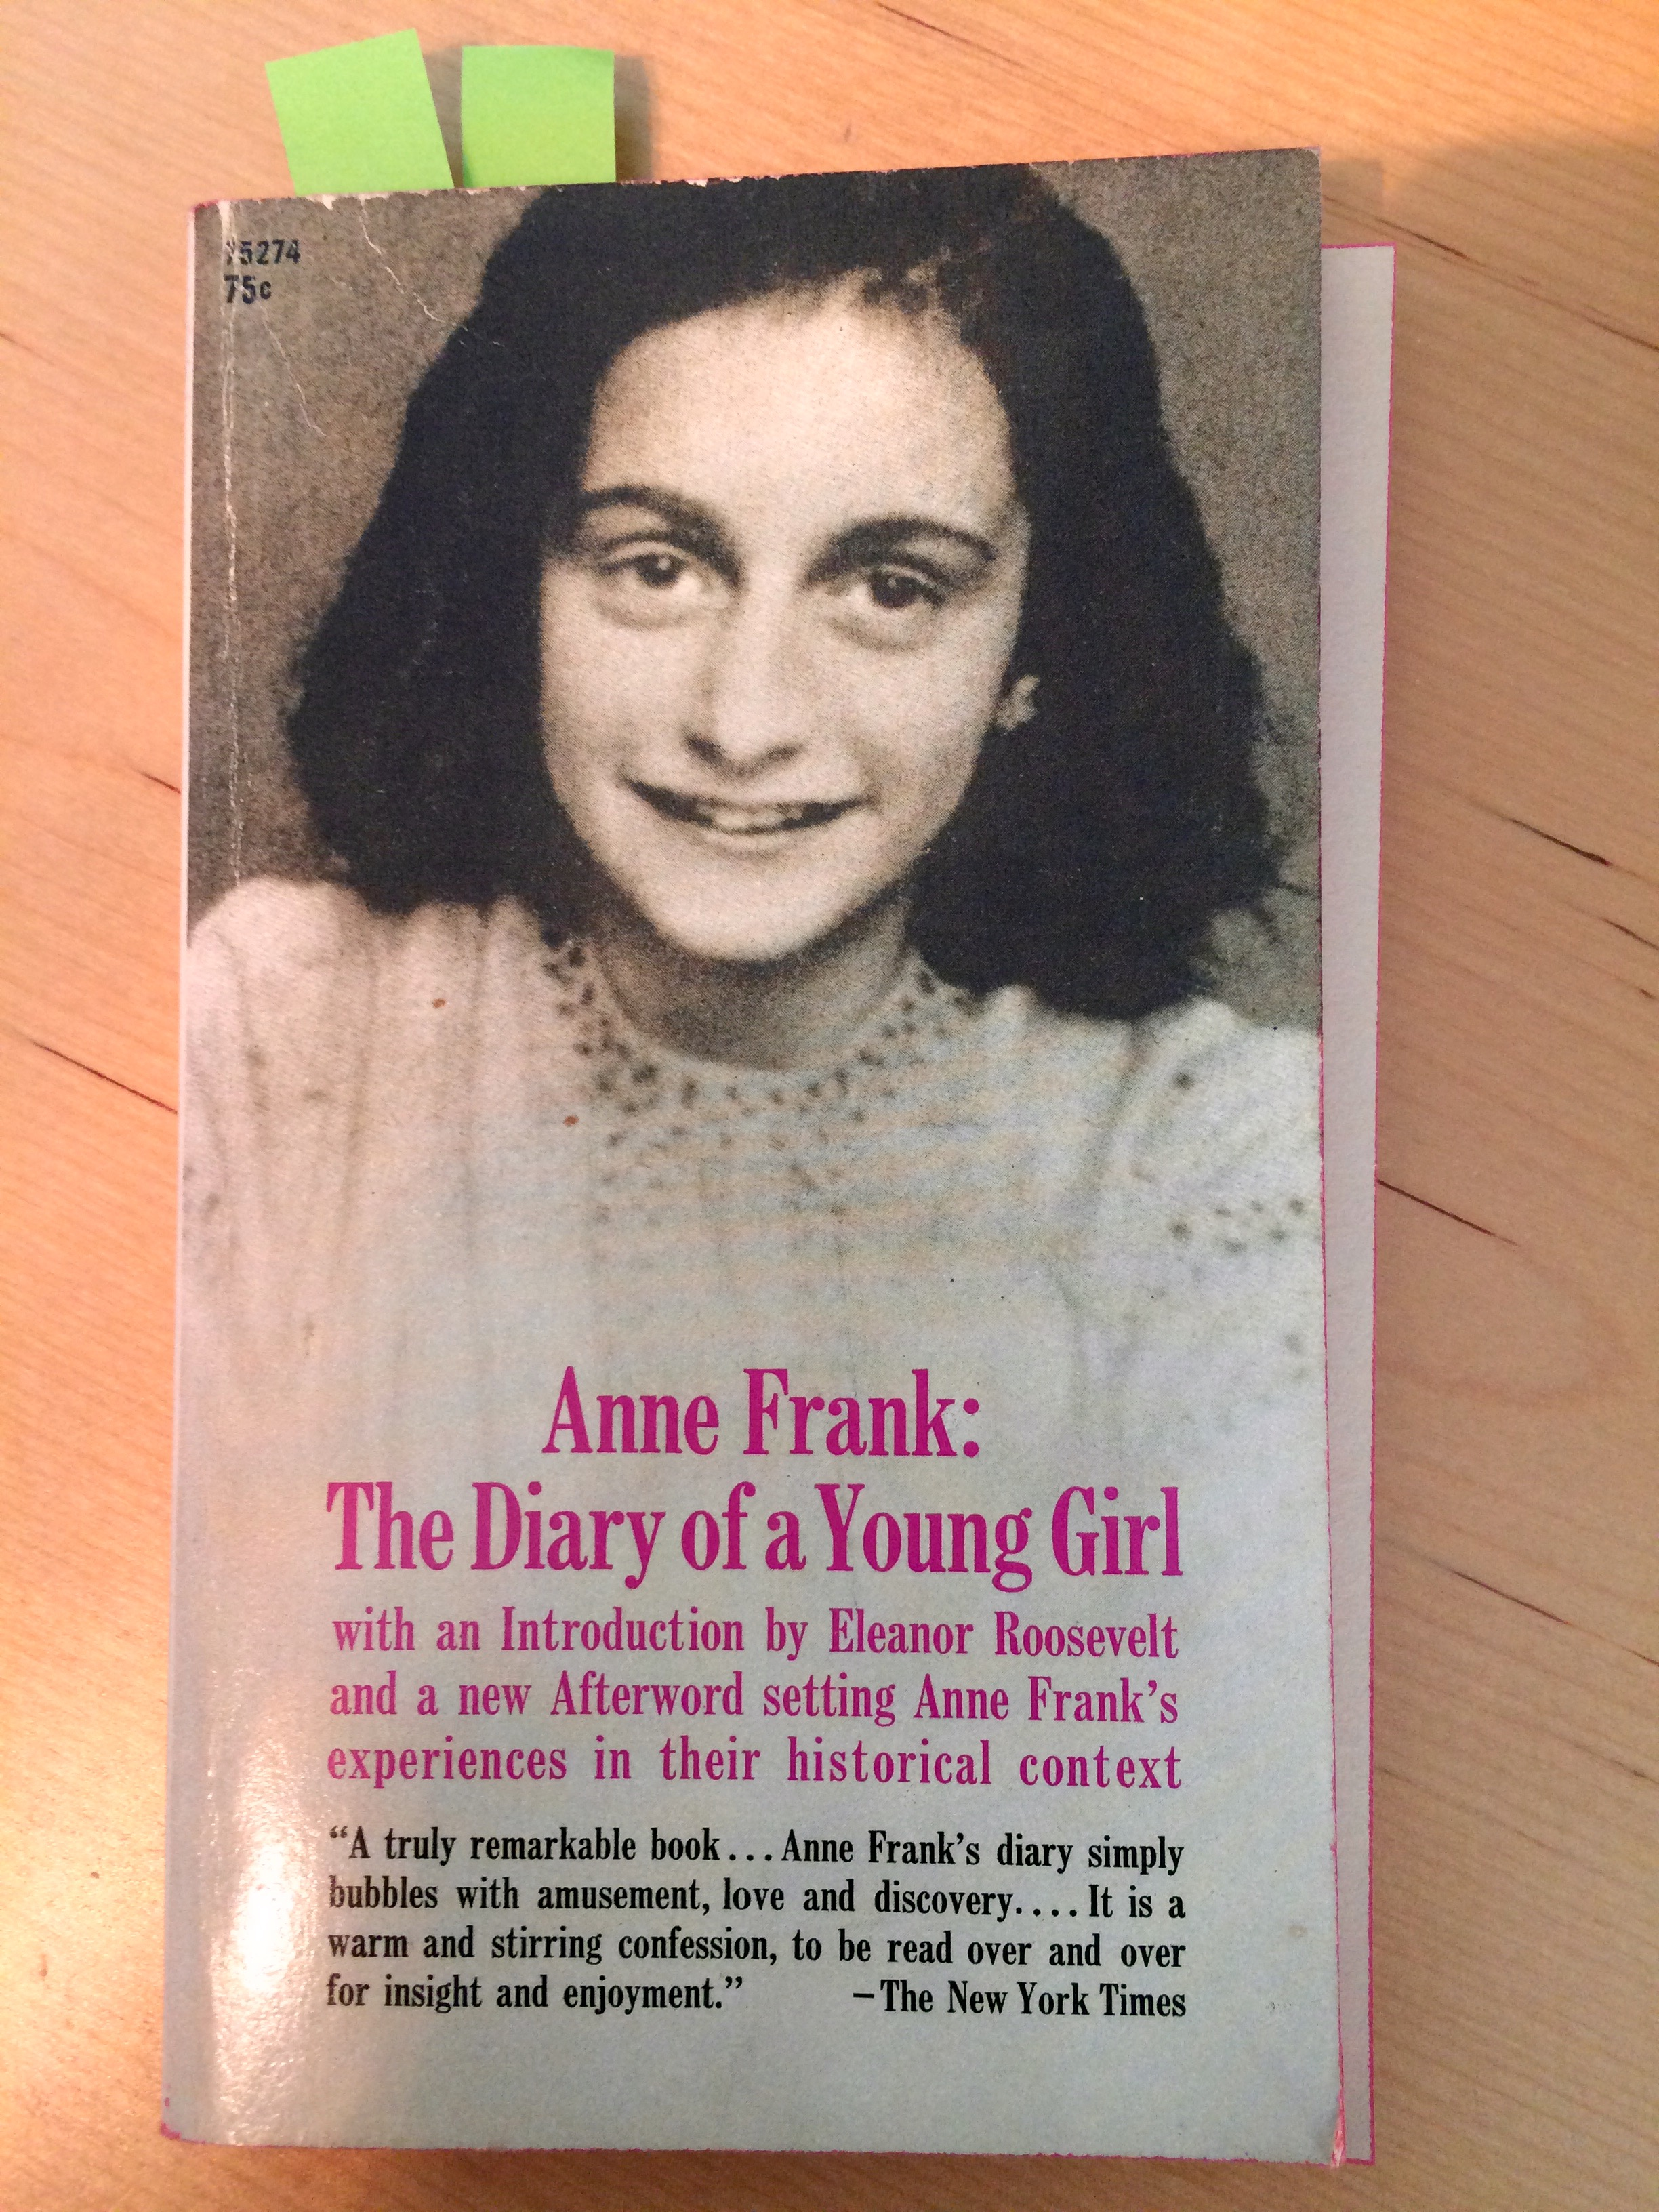 anne frank the diary of a — anne frank, july 15, 1944 anne frank's diary is not a novel or a tale of the imagination it is the diary kept by a young jewish girl for the two years she was forced to remain in hiding by the nazi persecution of the jews of europe.